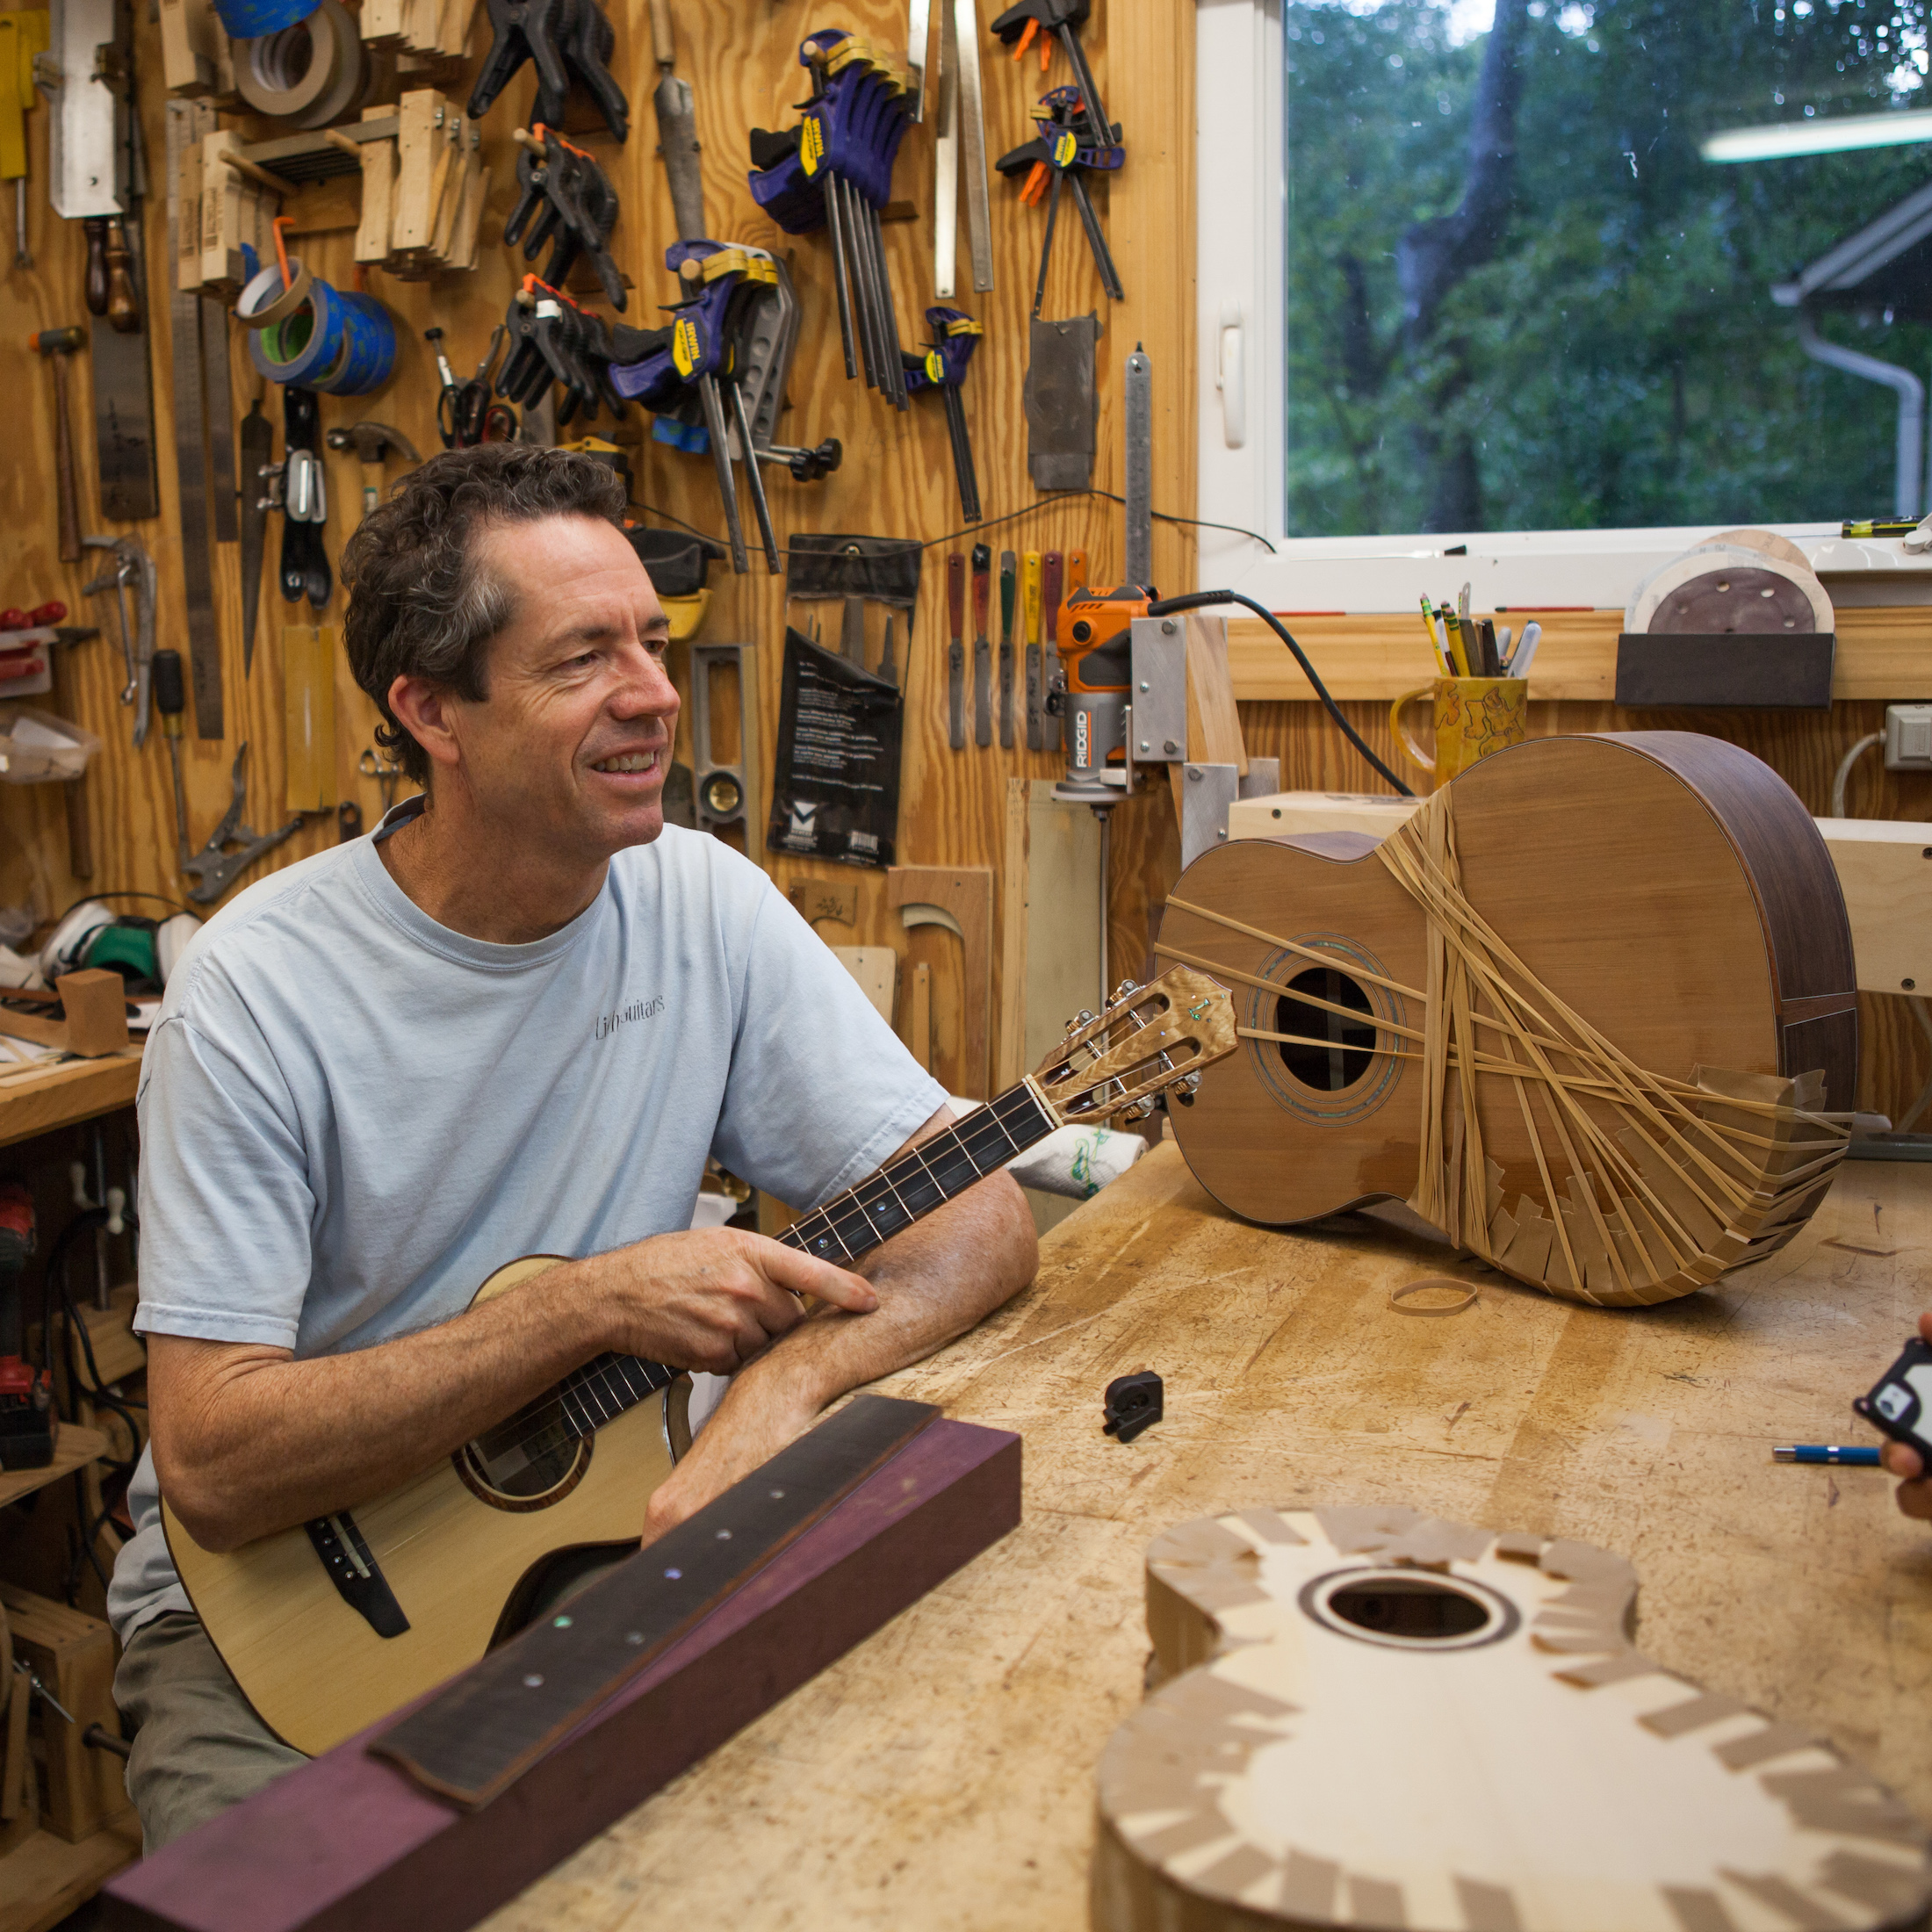 New Blue Ridge Mountain Festival Celebrates Hand-Crafted Instruments